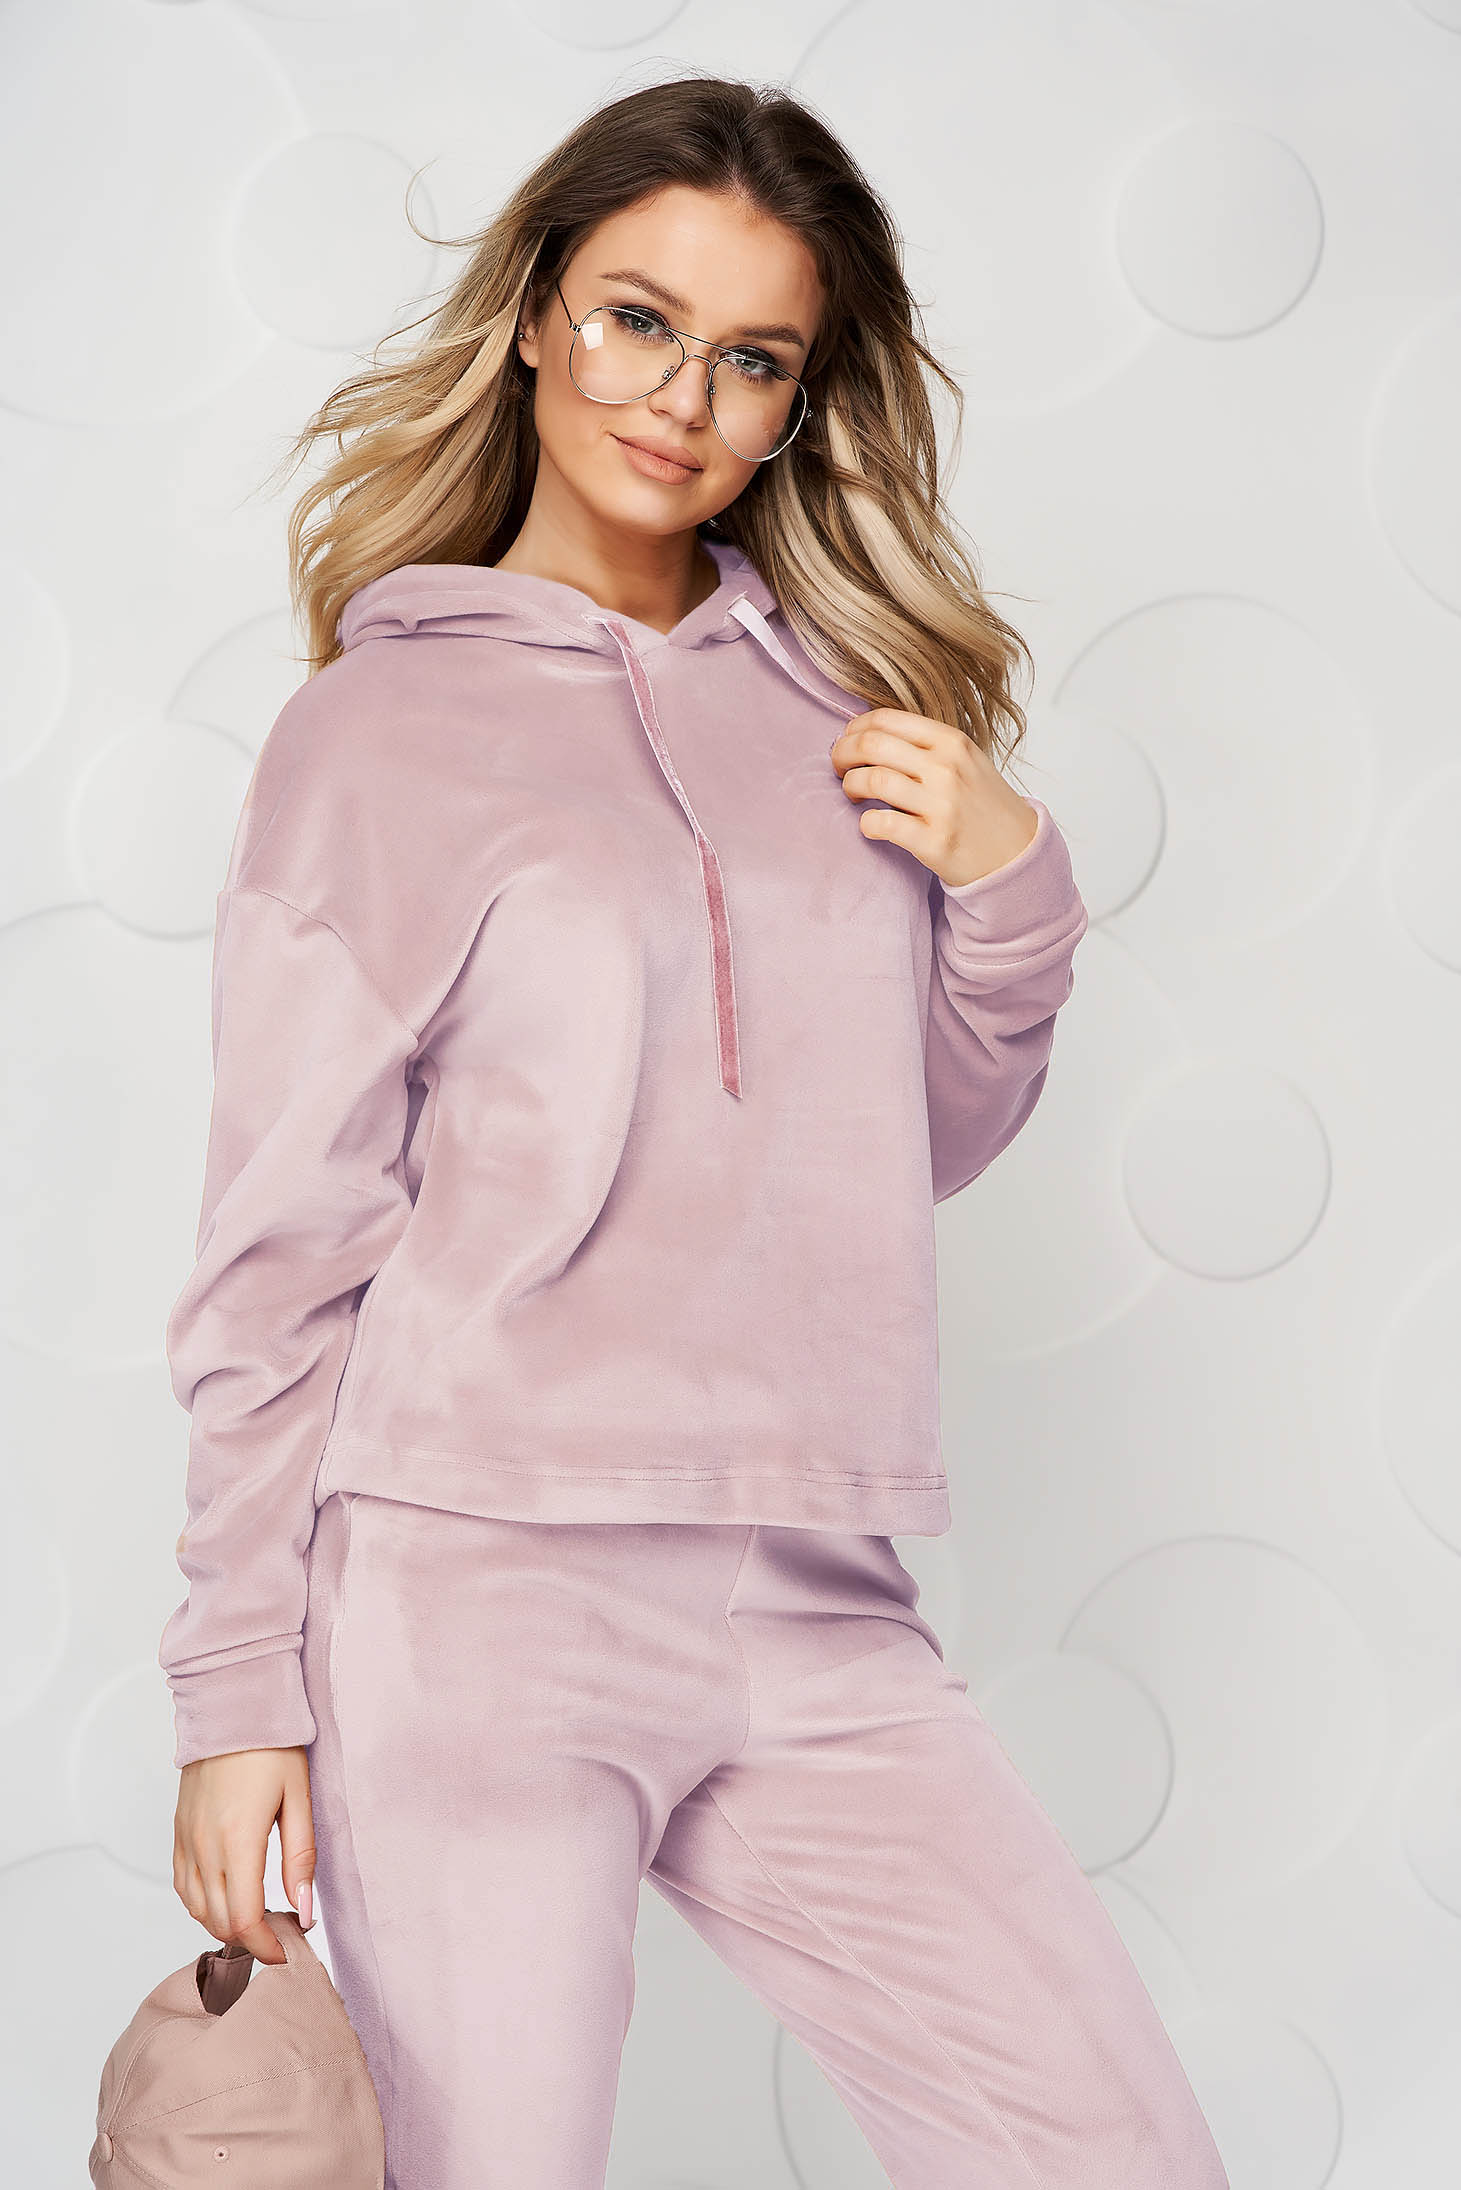 Lightpink casual sport 2 pieces 2 pieces loose fit with undetachable hood